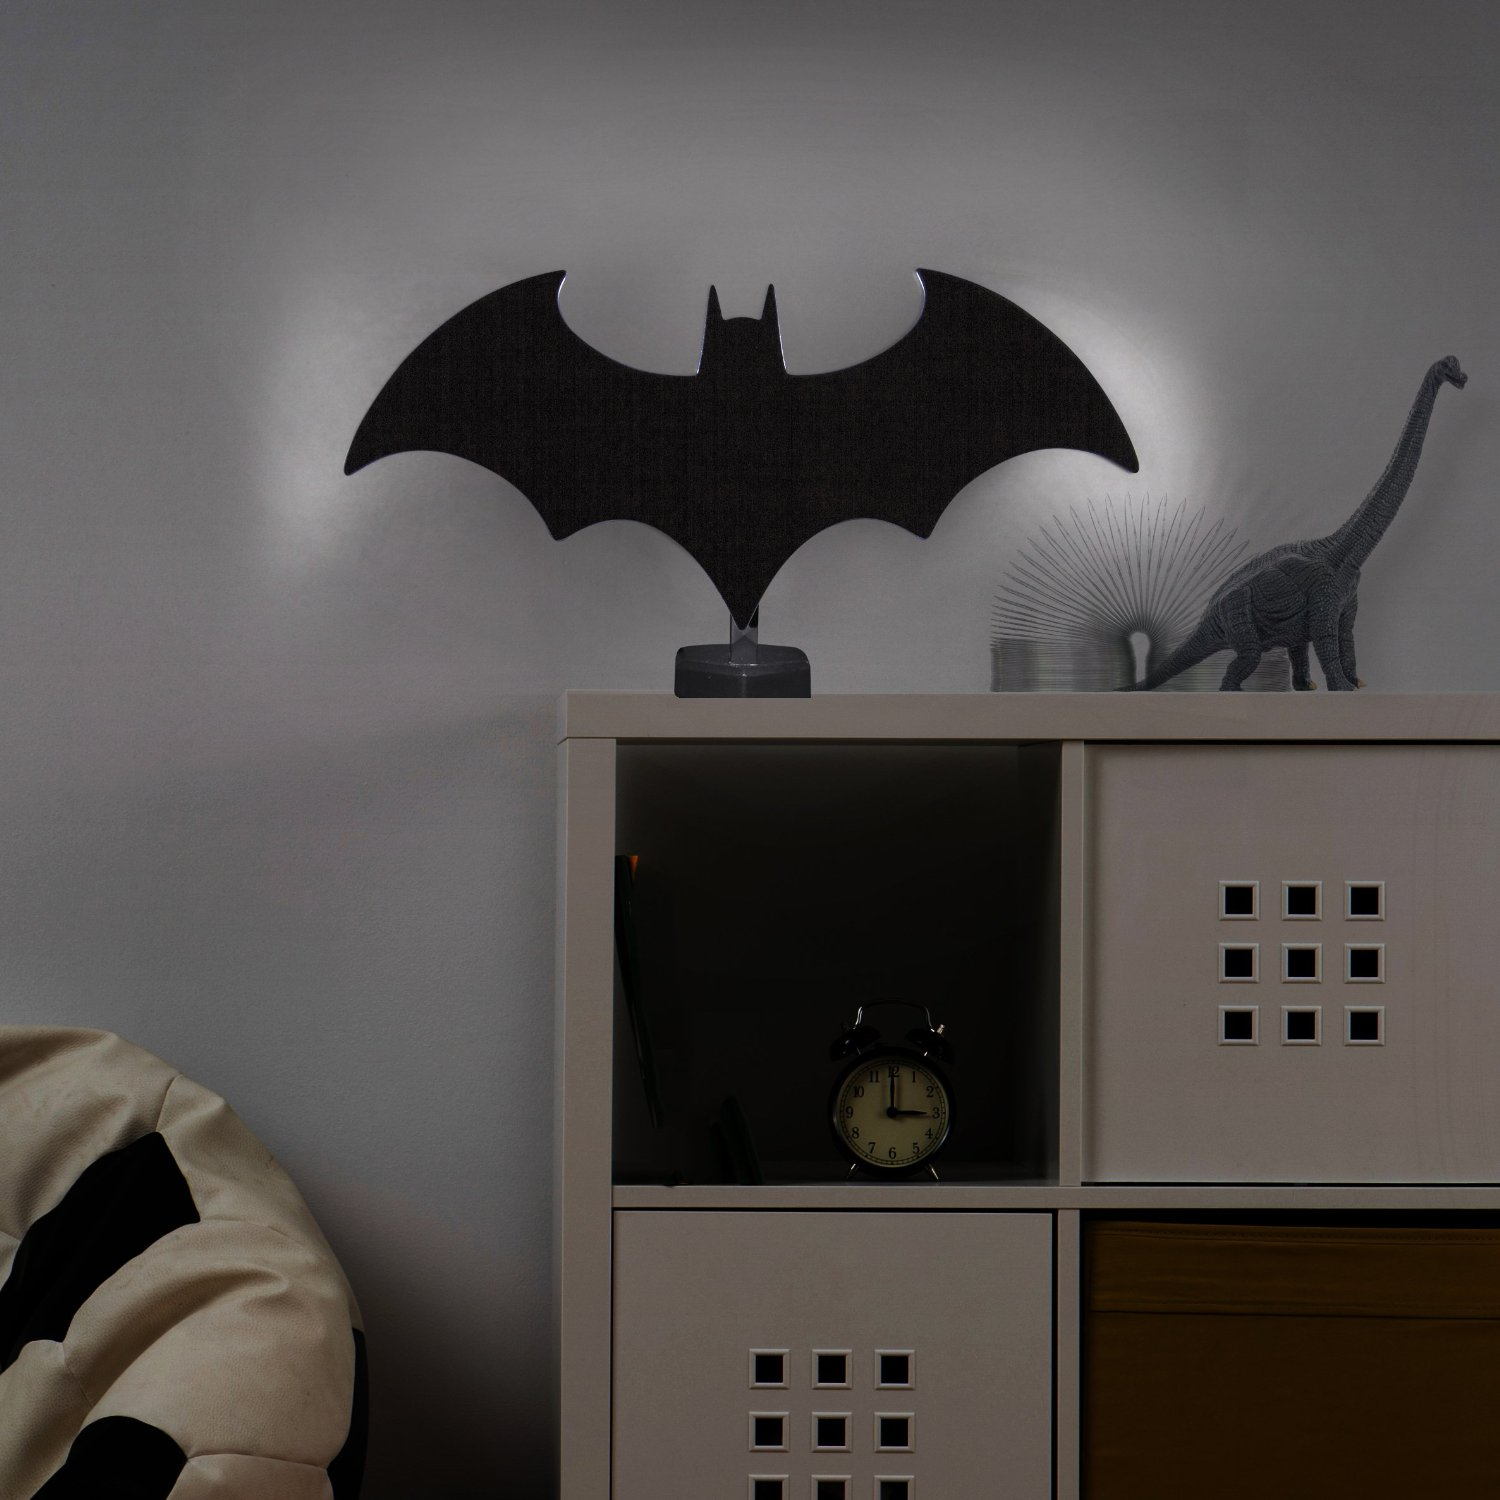 luz-ambiente-batman-eclipse